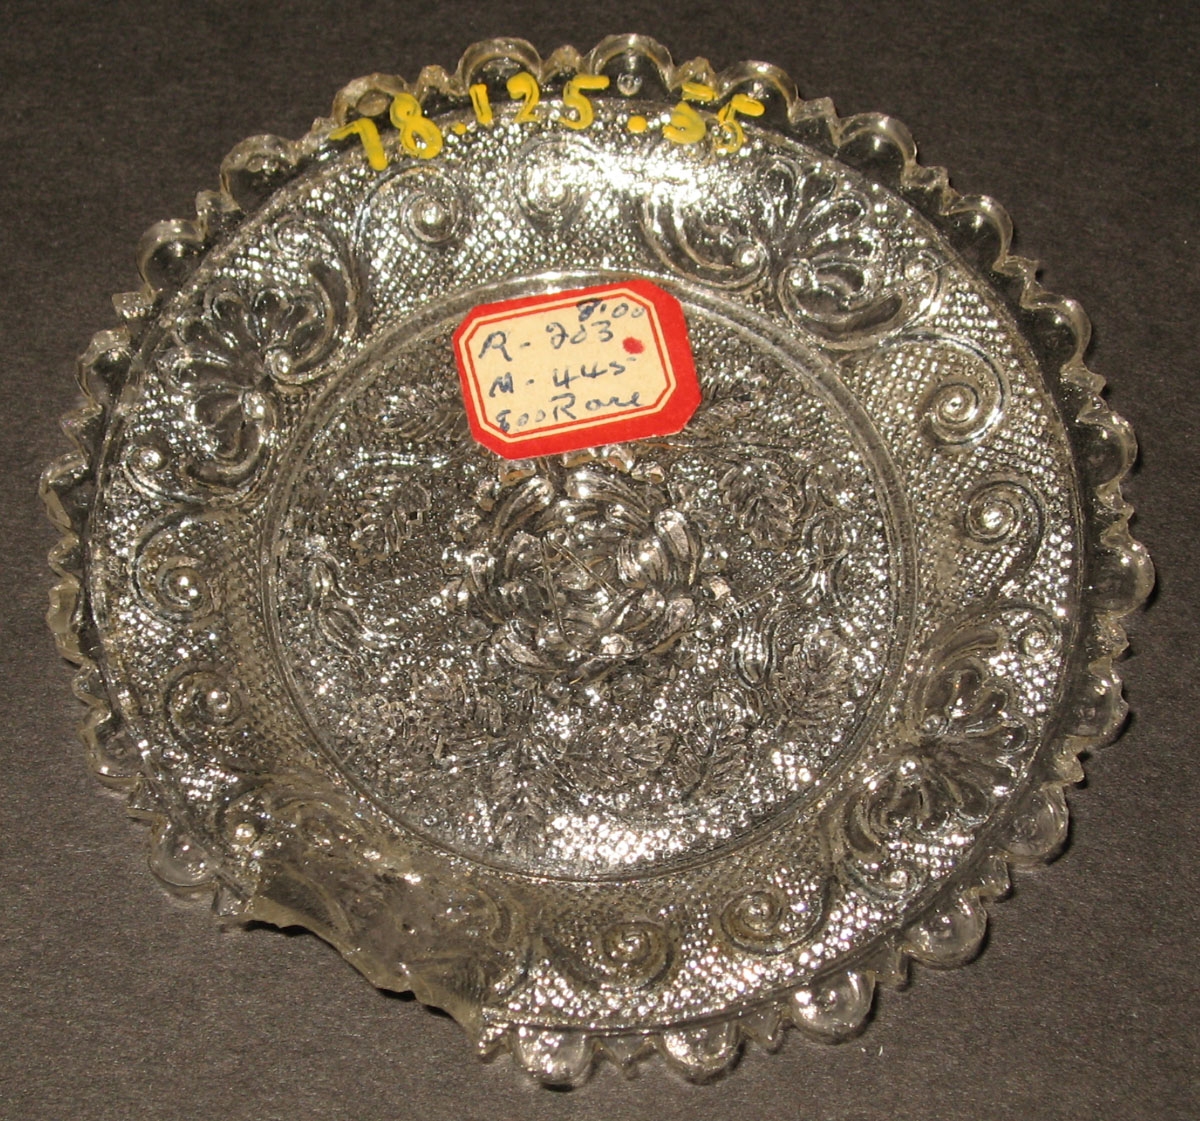 1978.0125.055 Glass cup plate